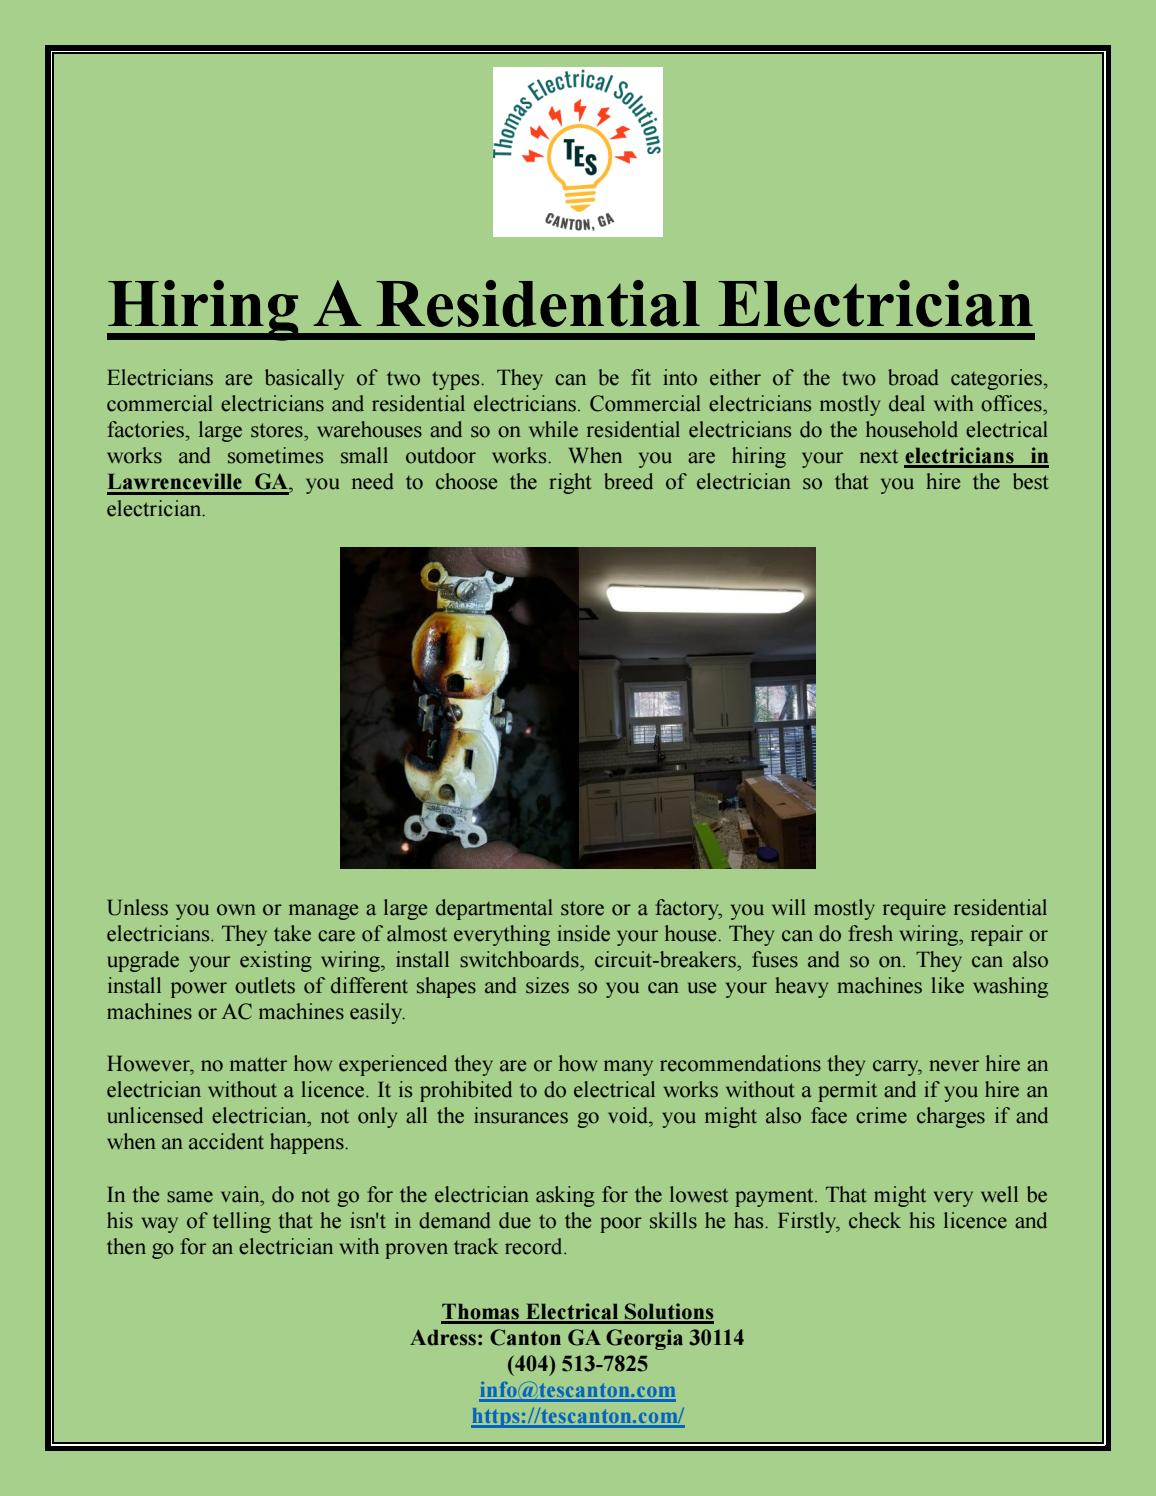 Hiring A Residential Electrician by Thomas Electrical ... on